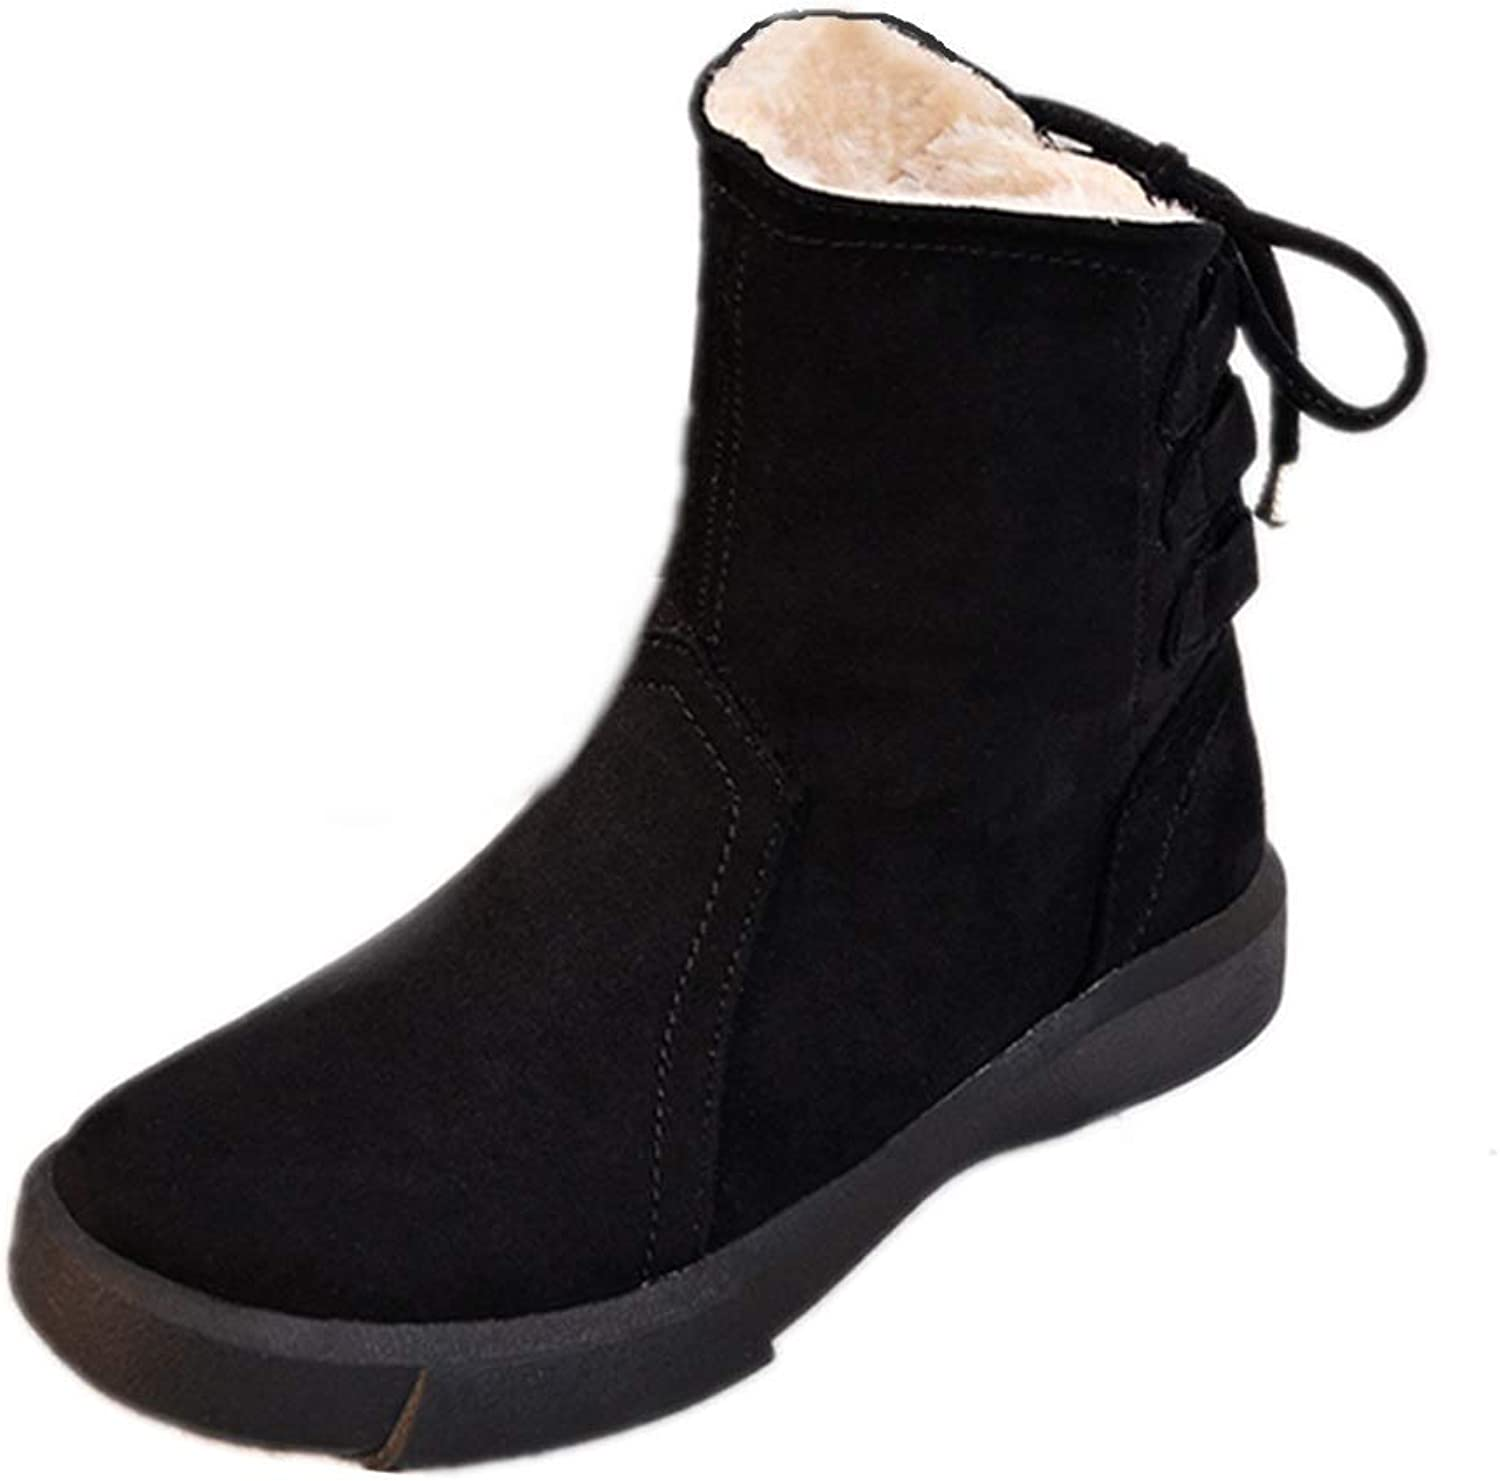 Ladies Women Ankle Boots  2018 New Martin Boots Autumn and Winter Tube Retro Short Boots Flat Wild Snow Boots Large Size Women's shoes